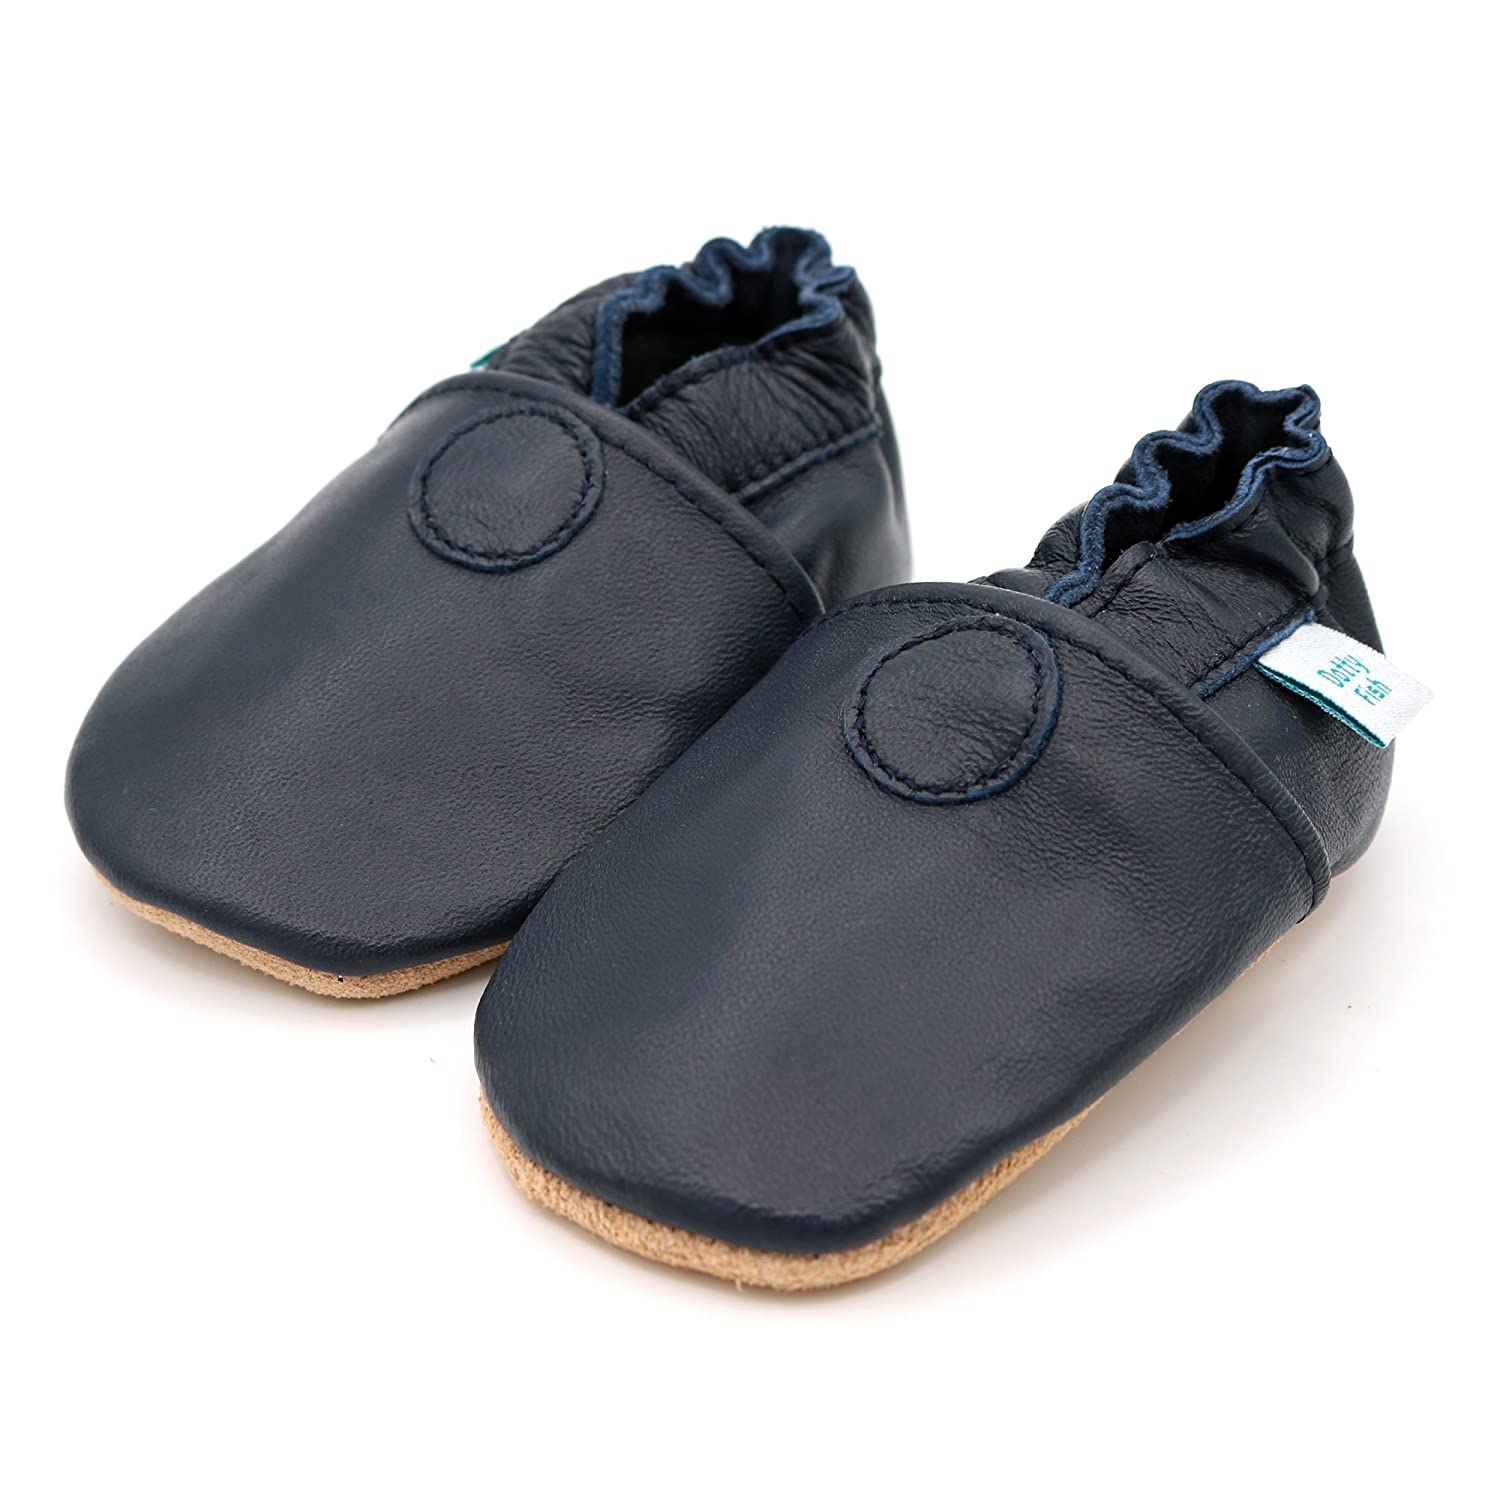 Toddler Shoes. Boys and Girls 0-6 Months to 3-4 Years Dotty Fish Soft Leather Baby Shoes Non-Slip Suede Soles Plain Colours